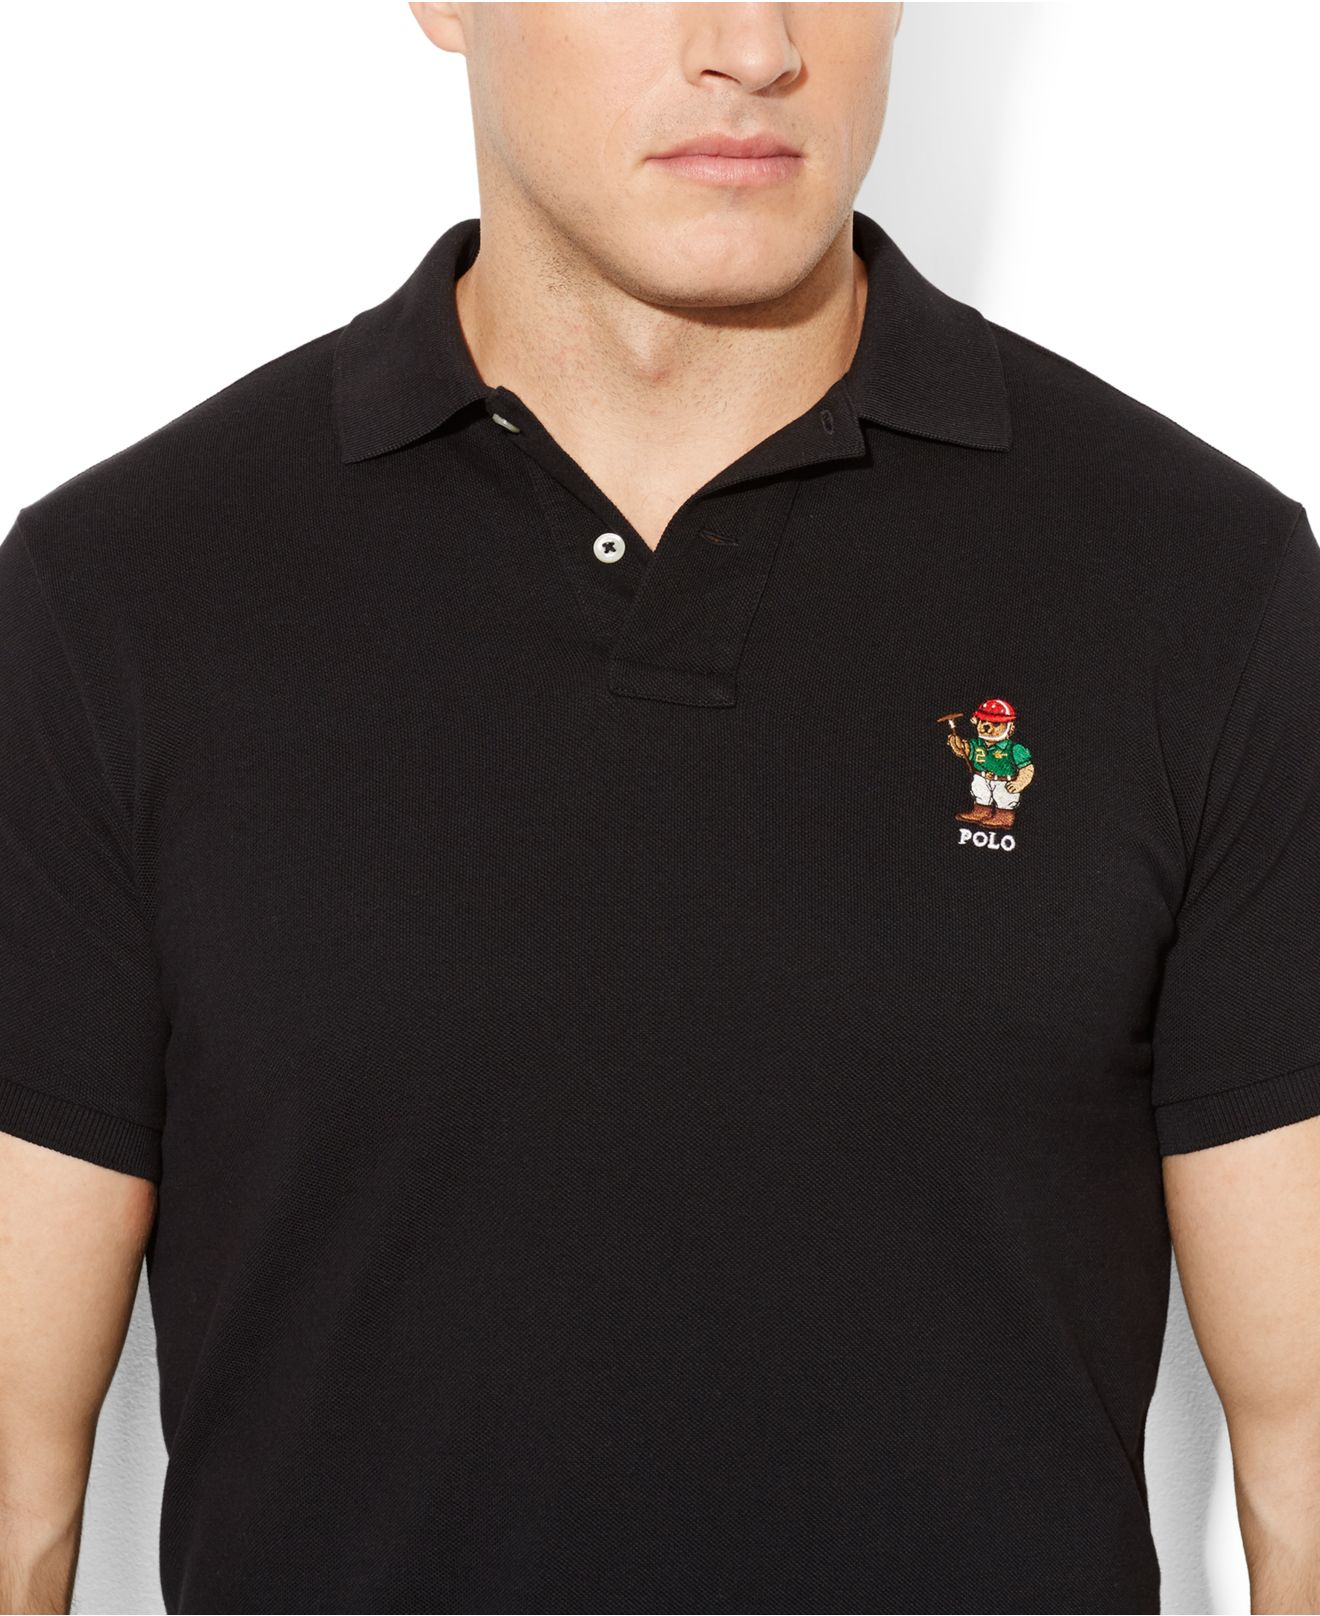 % original Ralph Lauren Polo Shirts Australia Online Sale, % authentic Cheap Ralph Lauren Polo Shirt Outlet Online, only official stockist, made in usa, free shipping.